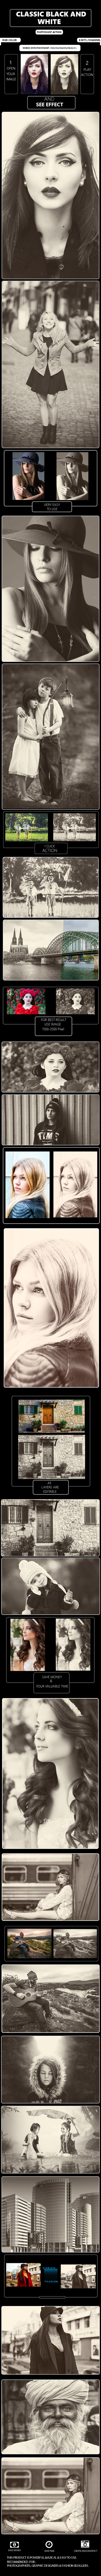 Classic Black & White :: Photoshop Action - Photoshop Add-ons